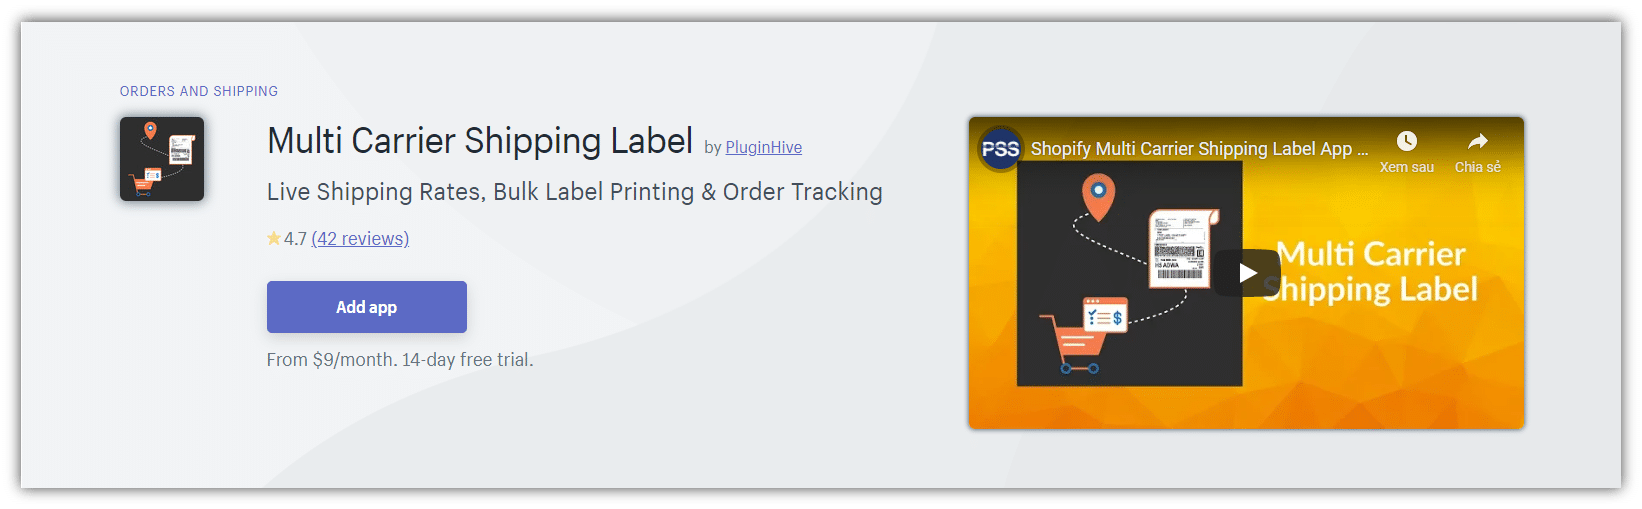 Multi Carrier Shipping Label